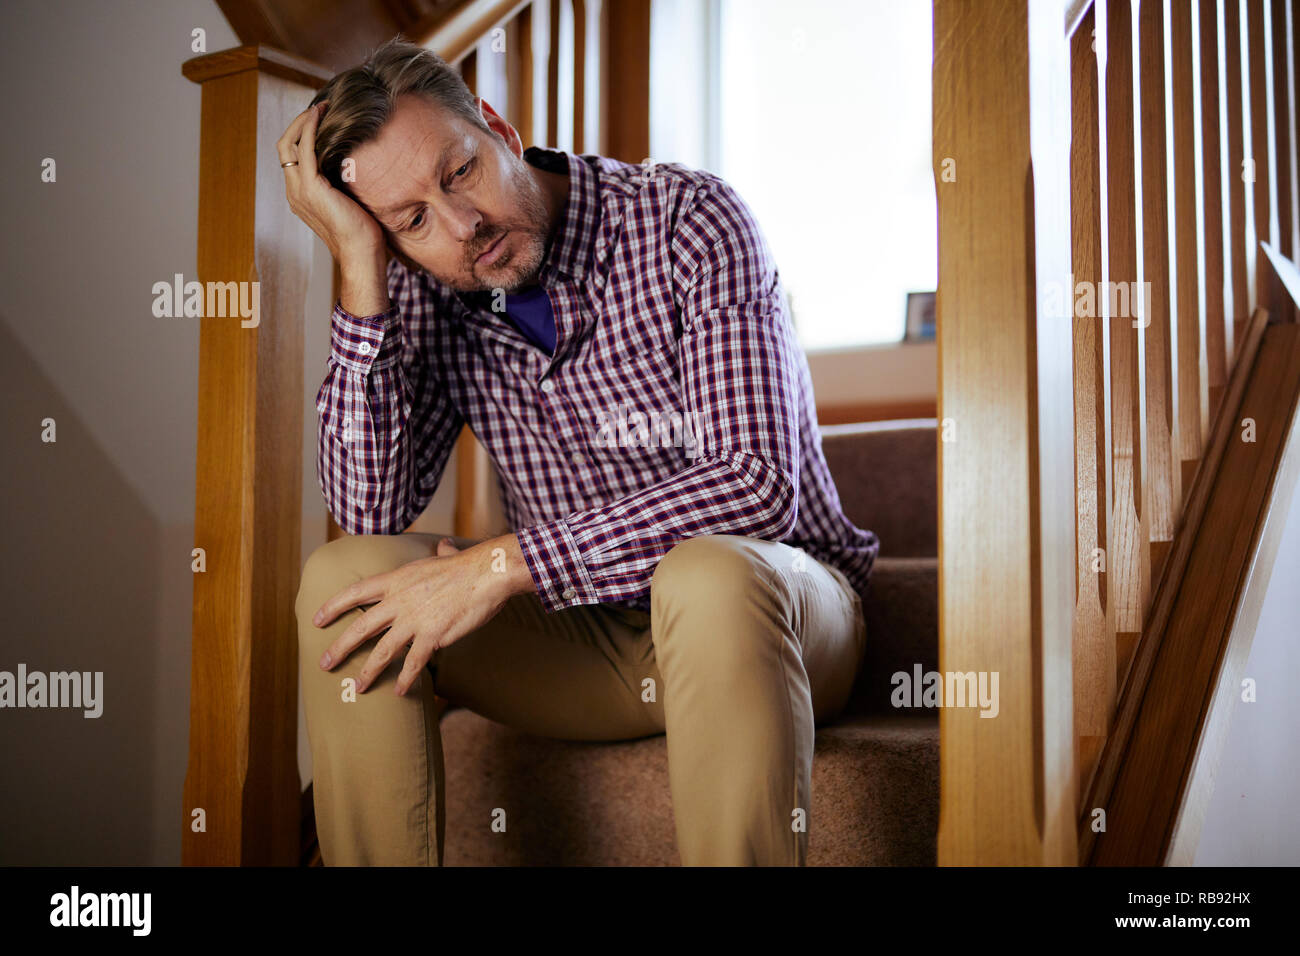 Man sat on stairs thoughtful - Stock Image